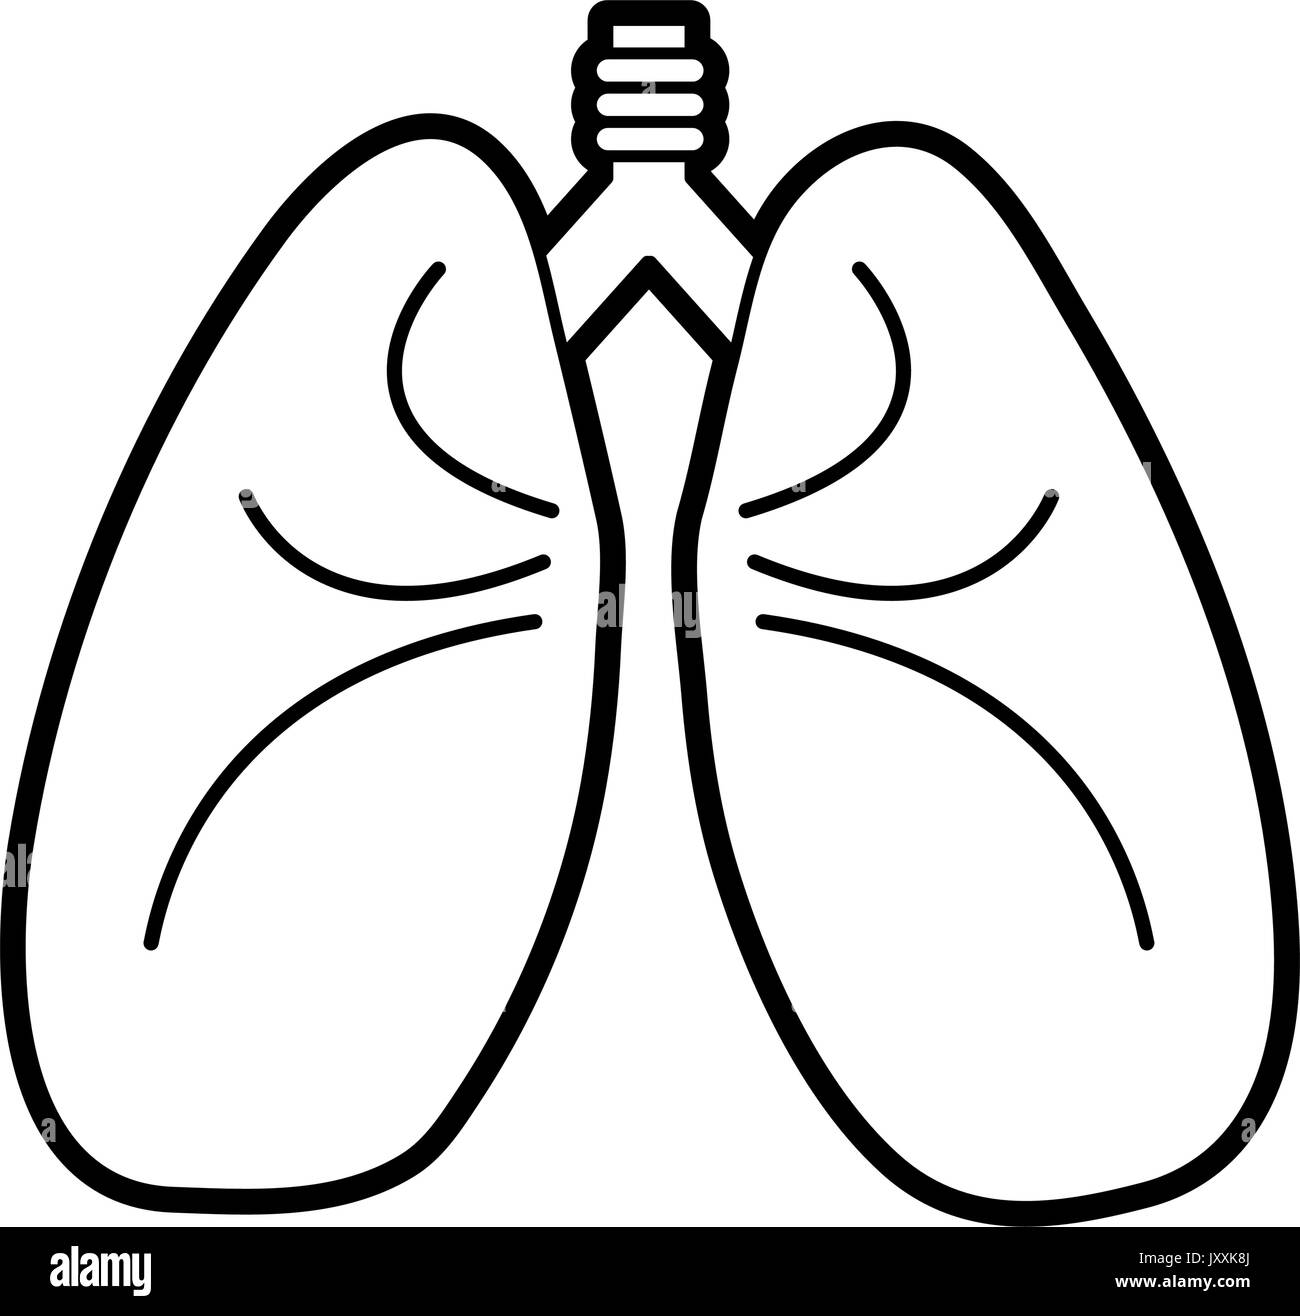 lungs vector illustration - Stock Image